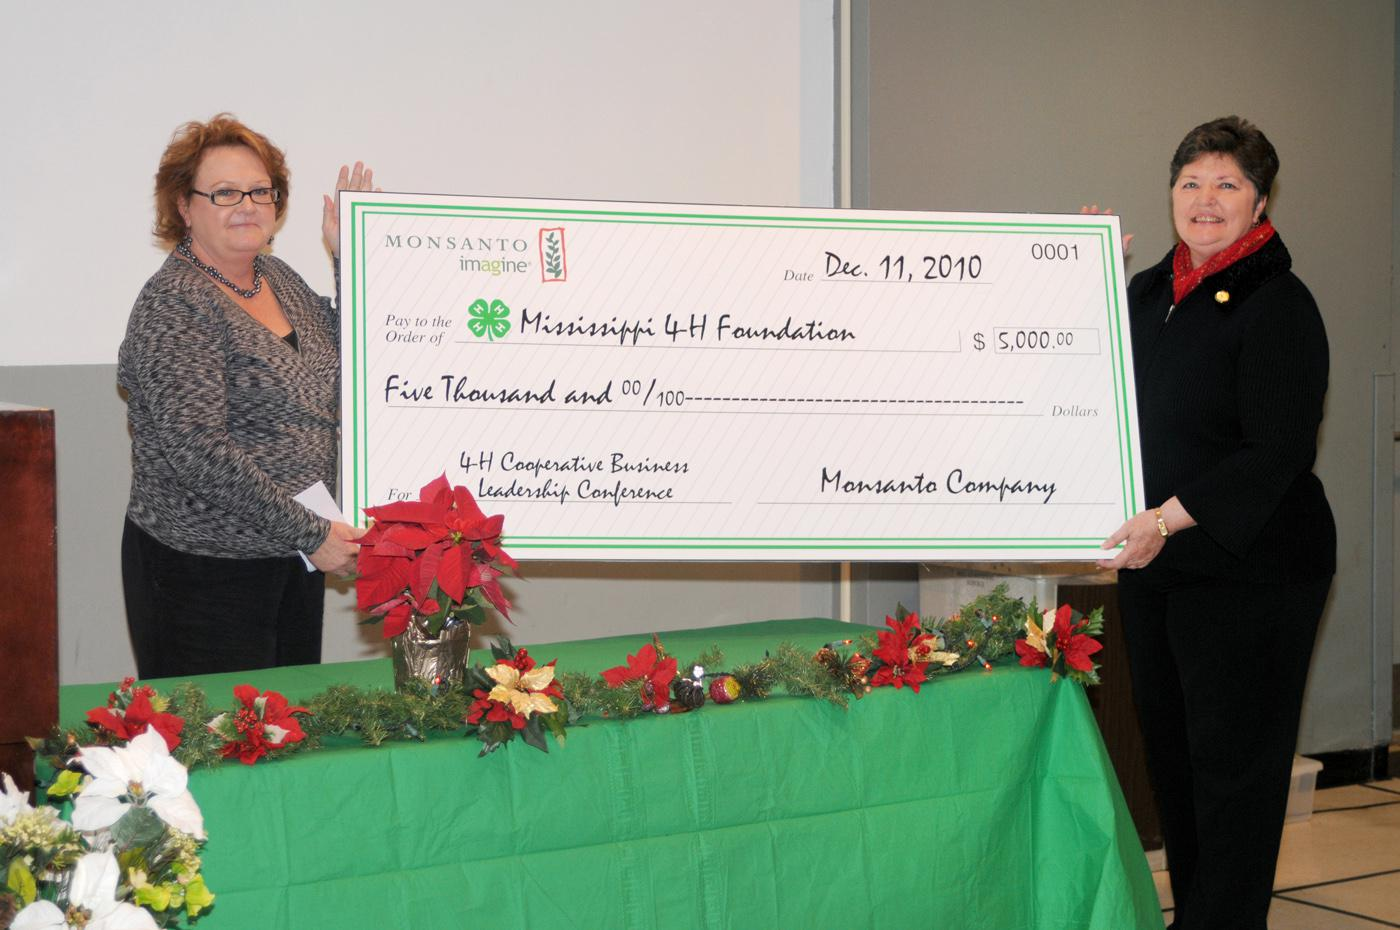 Monsanto Co. representative Derenda Stanley, left, presents Susan Holder a ceremonial check for $5,000 in support of 4-H. Holder, director of the 4-H Youth Program with the Mississippi State University Extension Service, said the funds will support the 4-H Cooperative Business Leadership Conference in 2011. This annual event is the reward given to senior-level 4-H members who placed first in their state competitions at 4-H Congress and state 4-H leadership team members. The primary objective of grants from